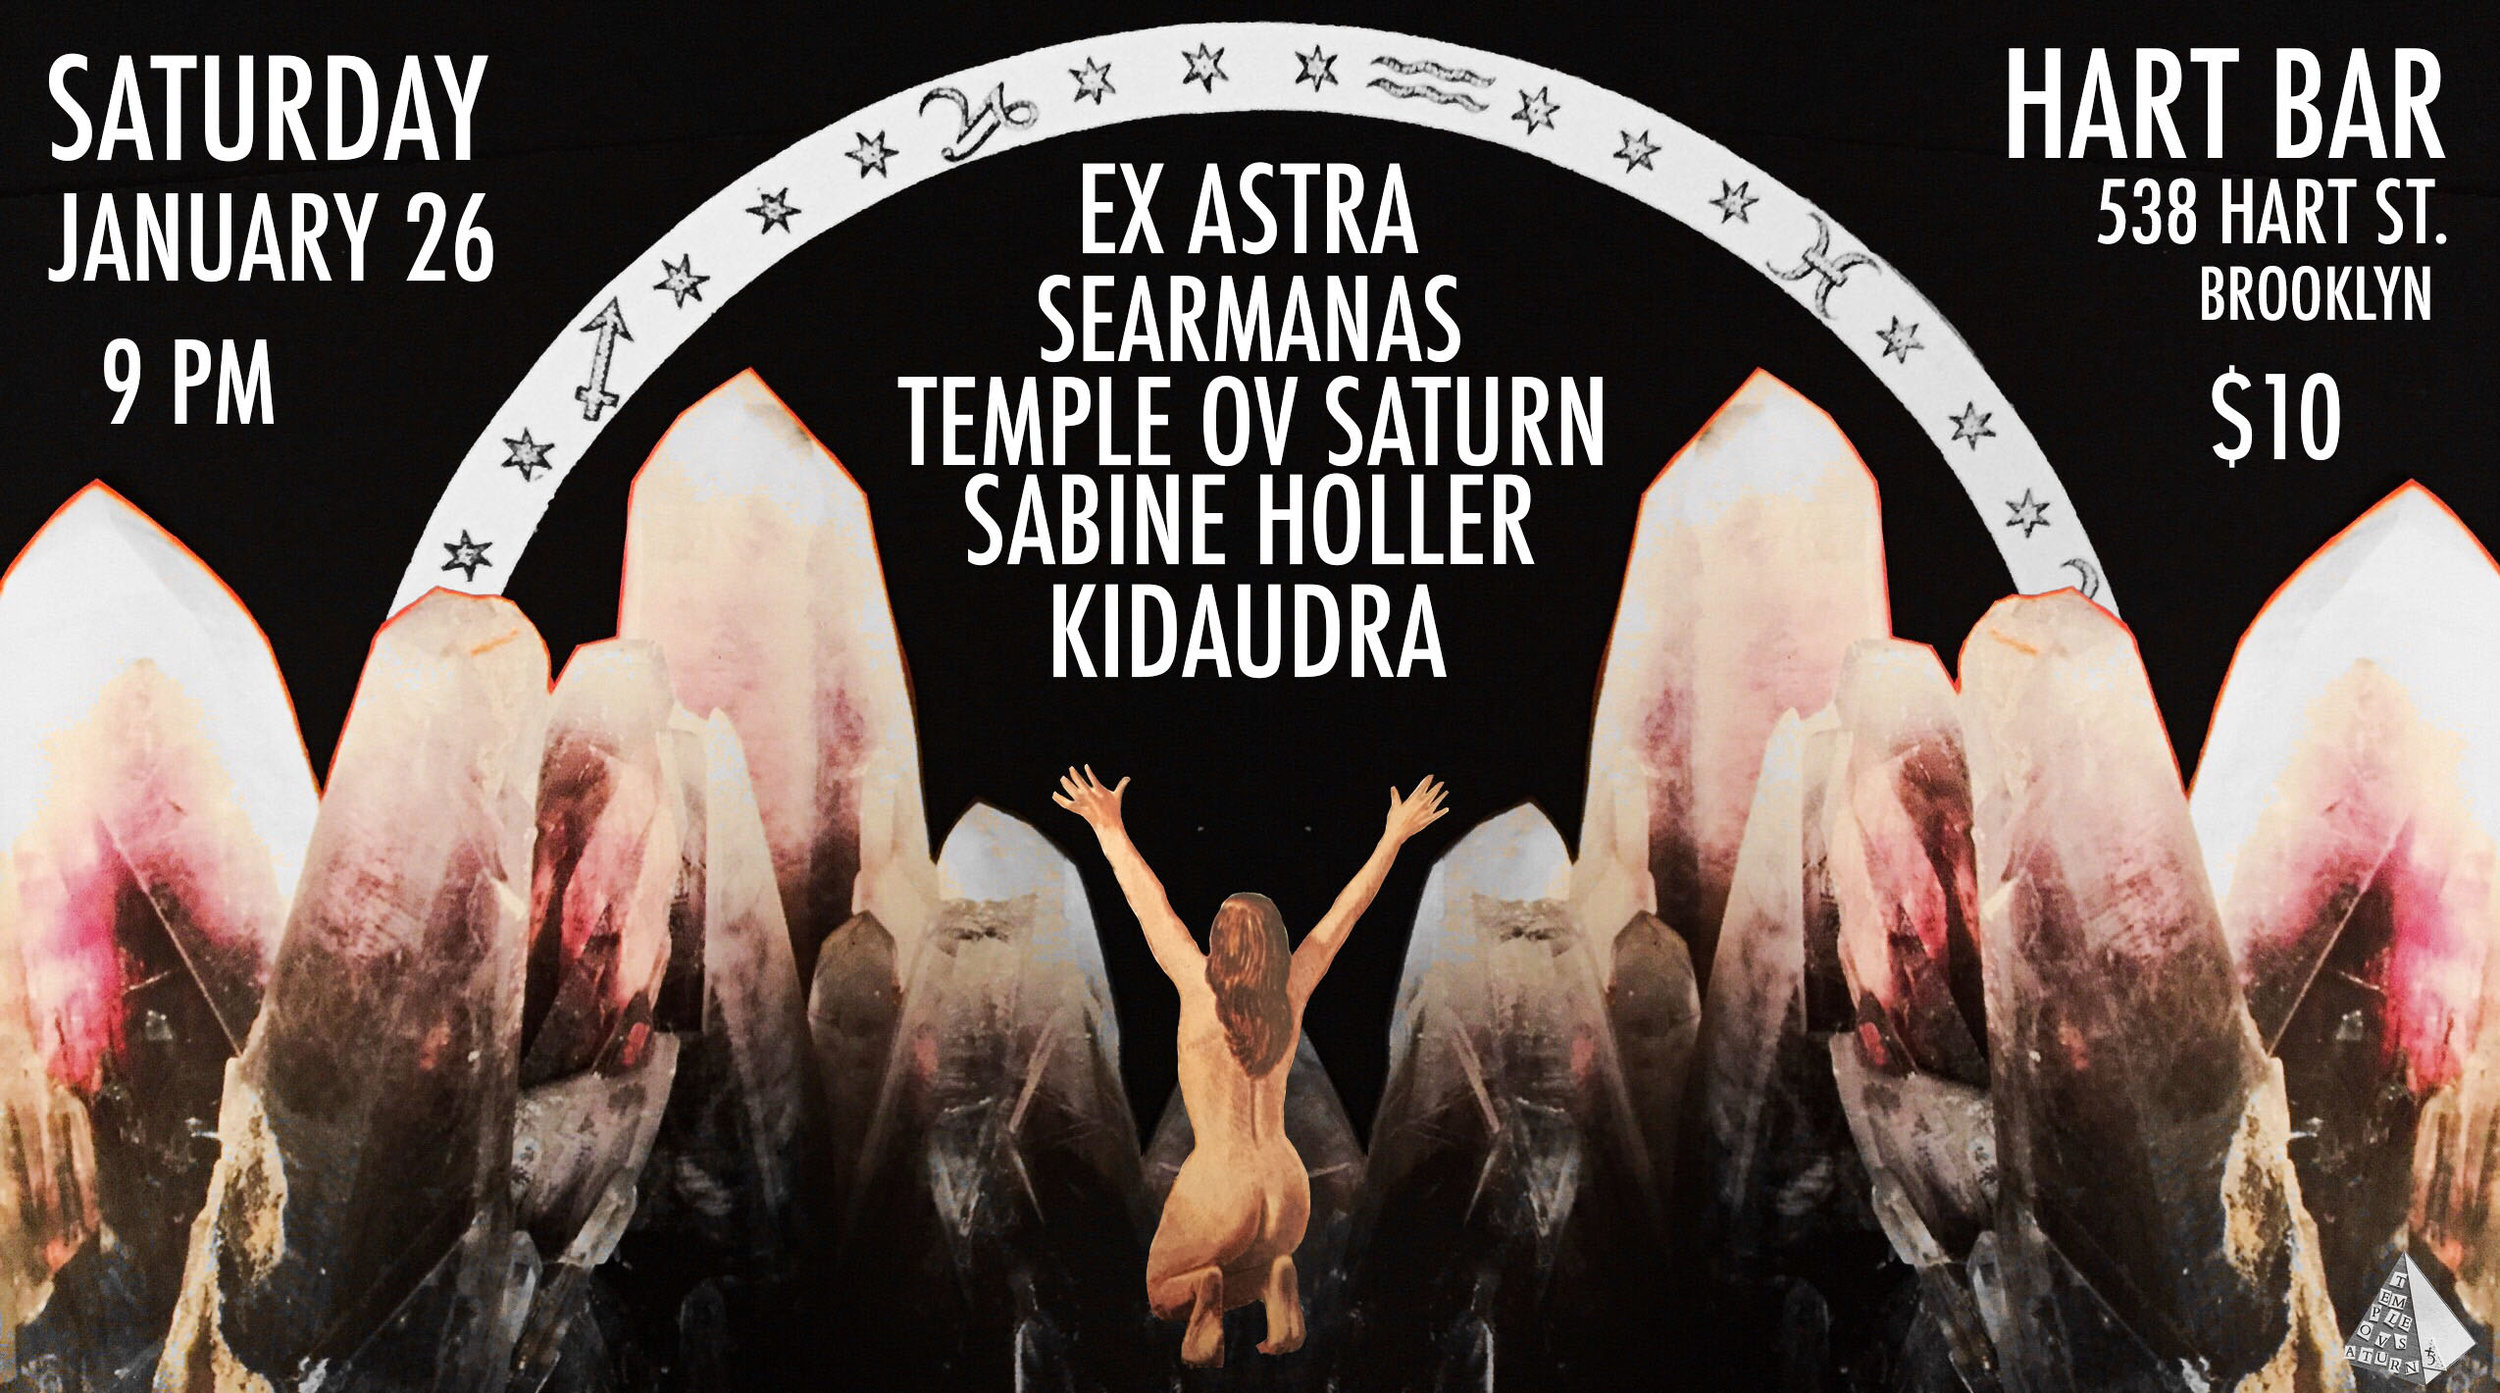 Saturday, January 26 at Hart Bar in Brooklyn: Temple ov Saturn with Ex Astra, Searmanas, Kidaudra, Sabine Holler